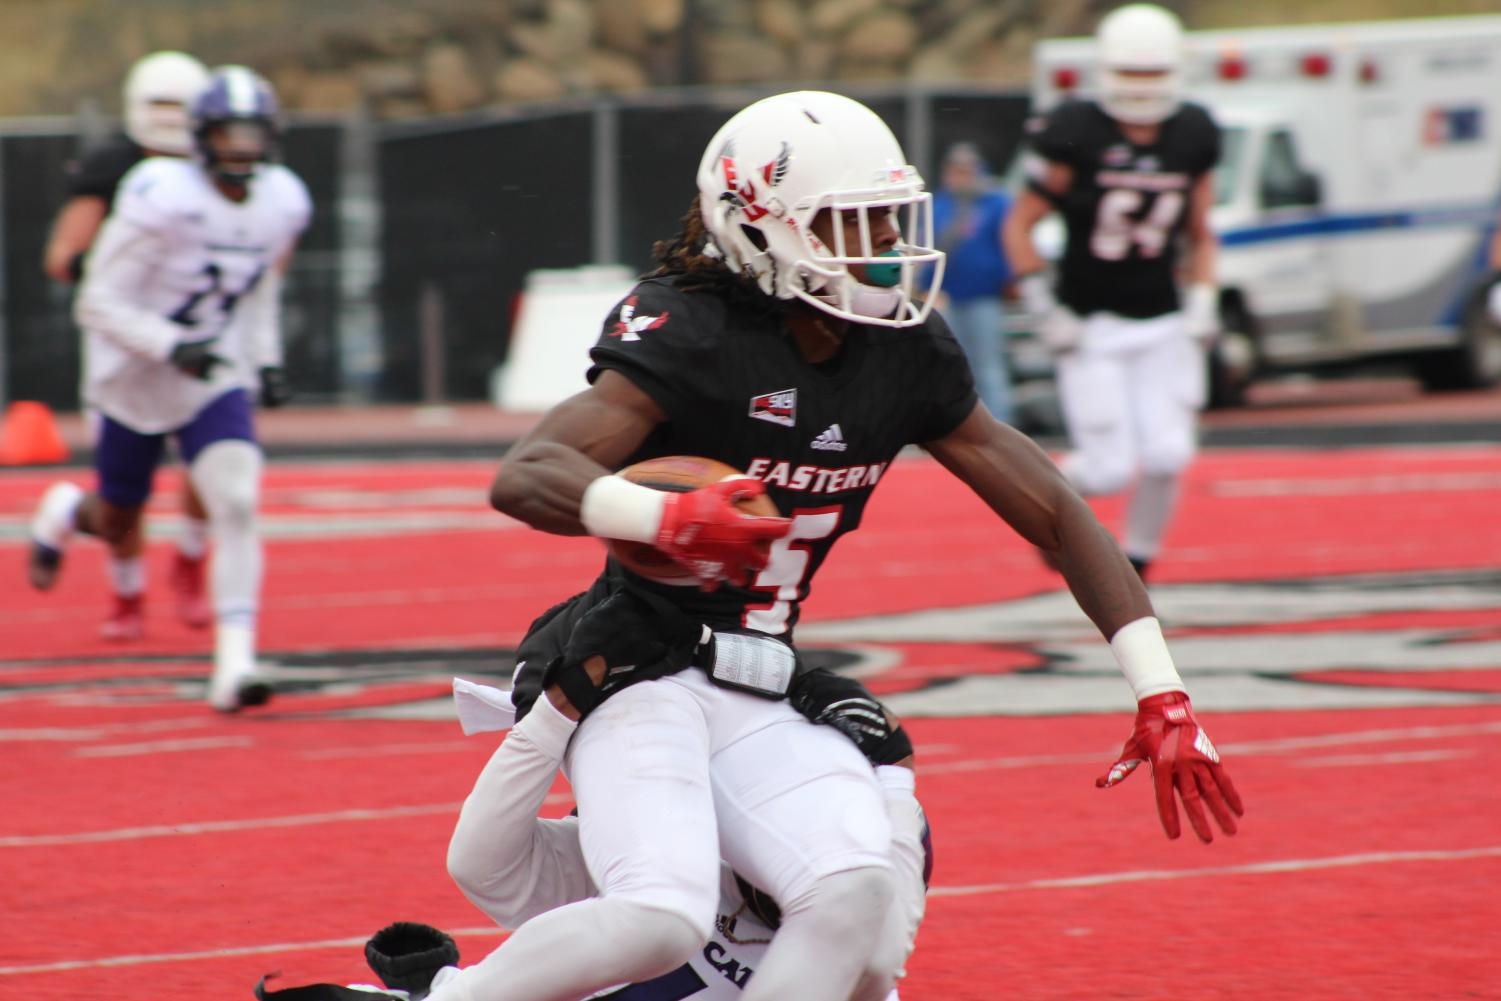 Junior wide receiver Nsimba Webster. He had seven receptions for 94 yards and a touchdown in Saturday's loss | Richard Clark IV for The Easterner.